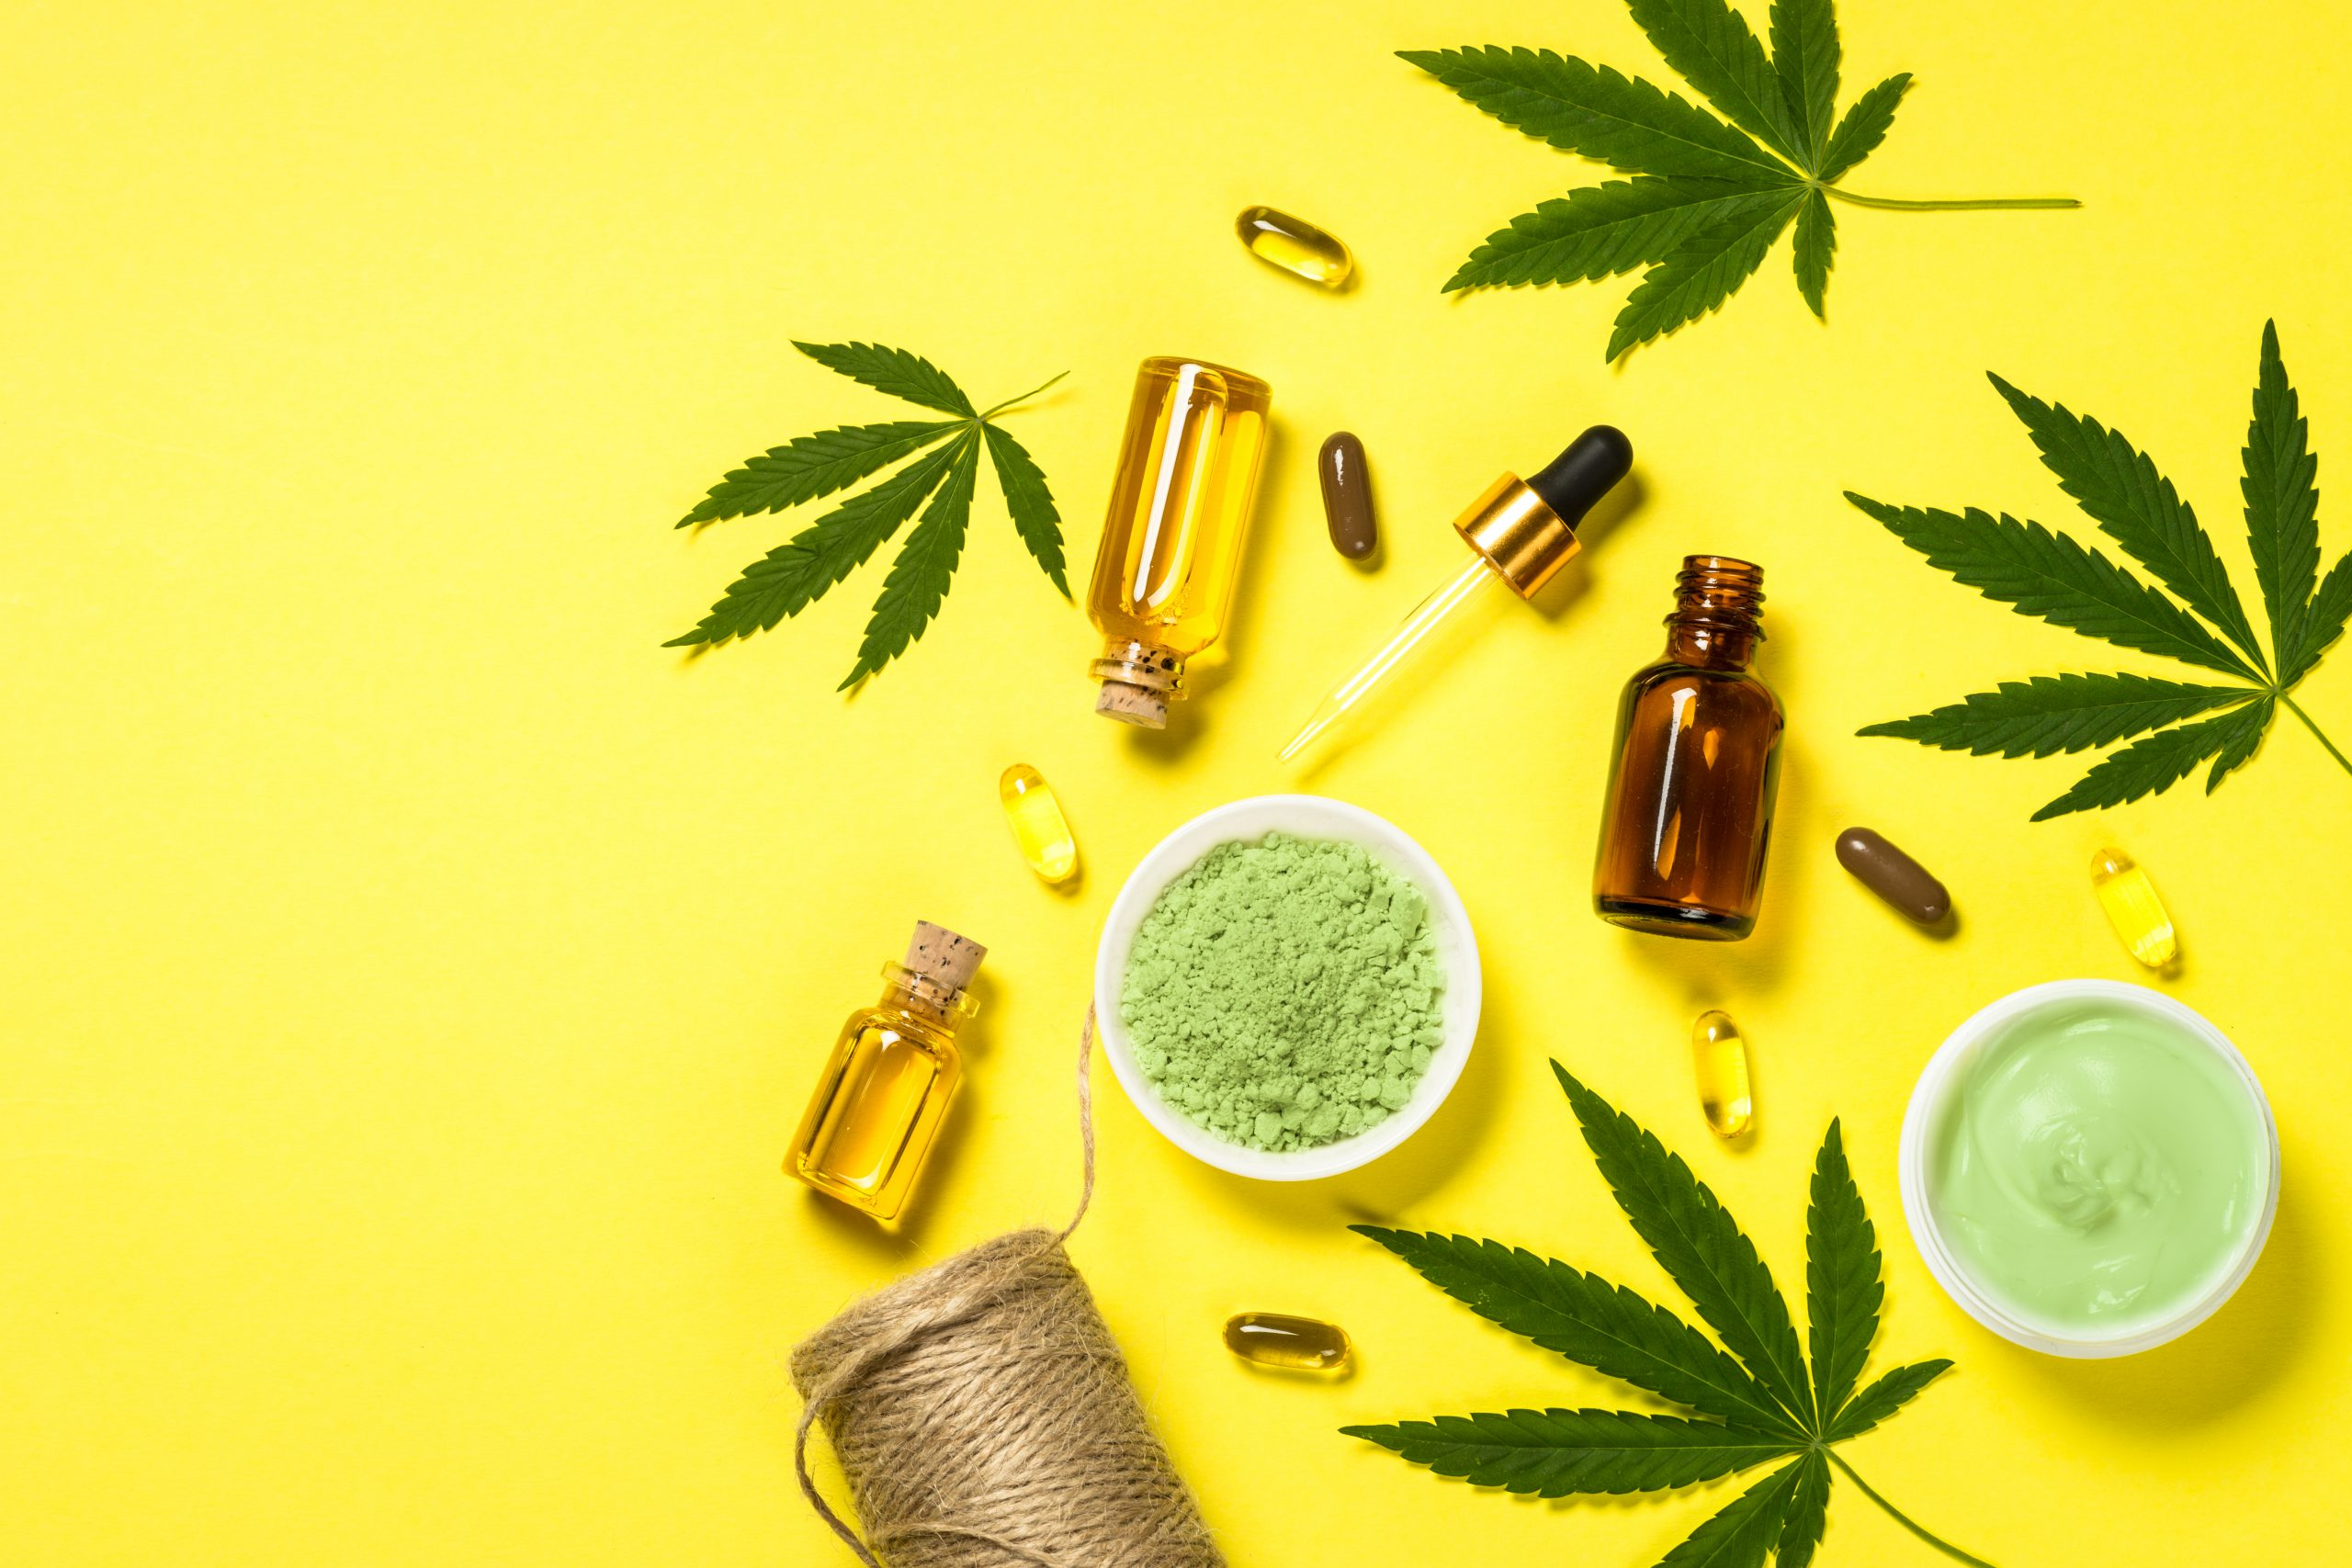 Legalizing adult -use cannabis in Thailand